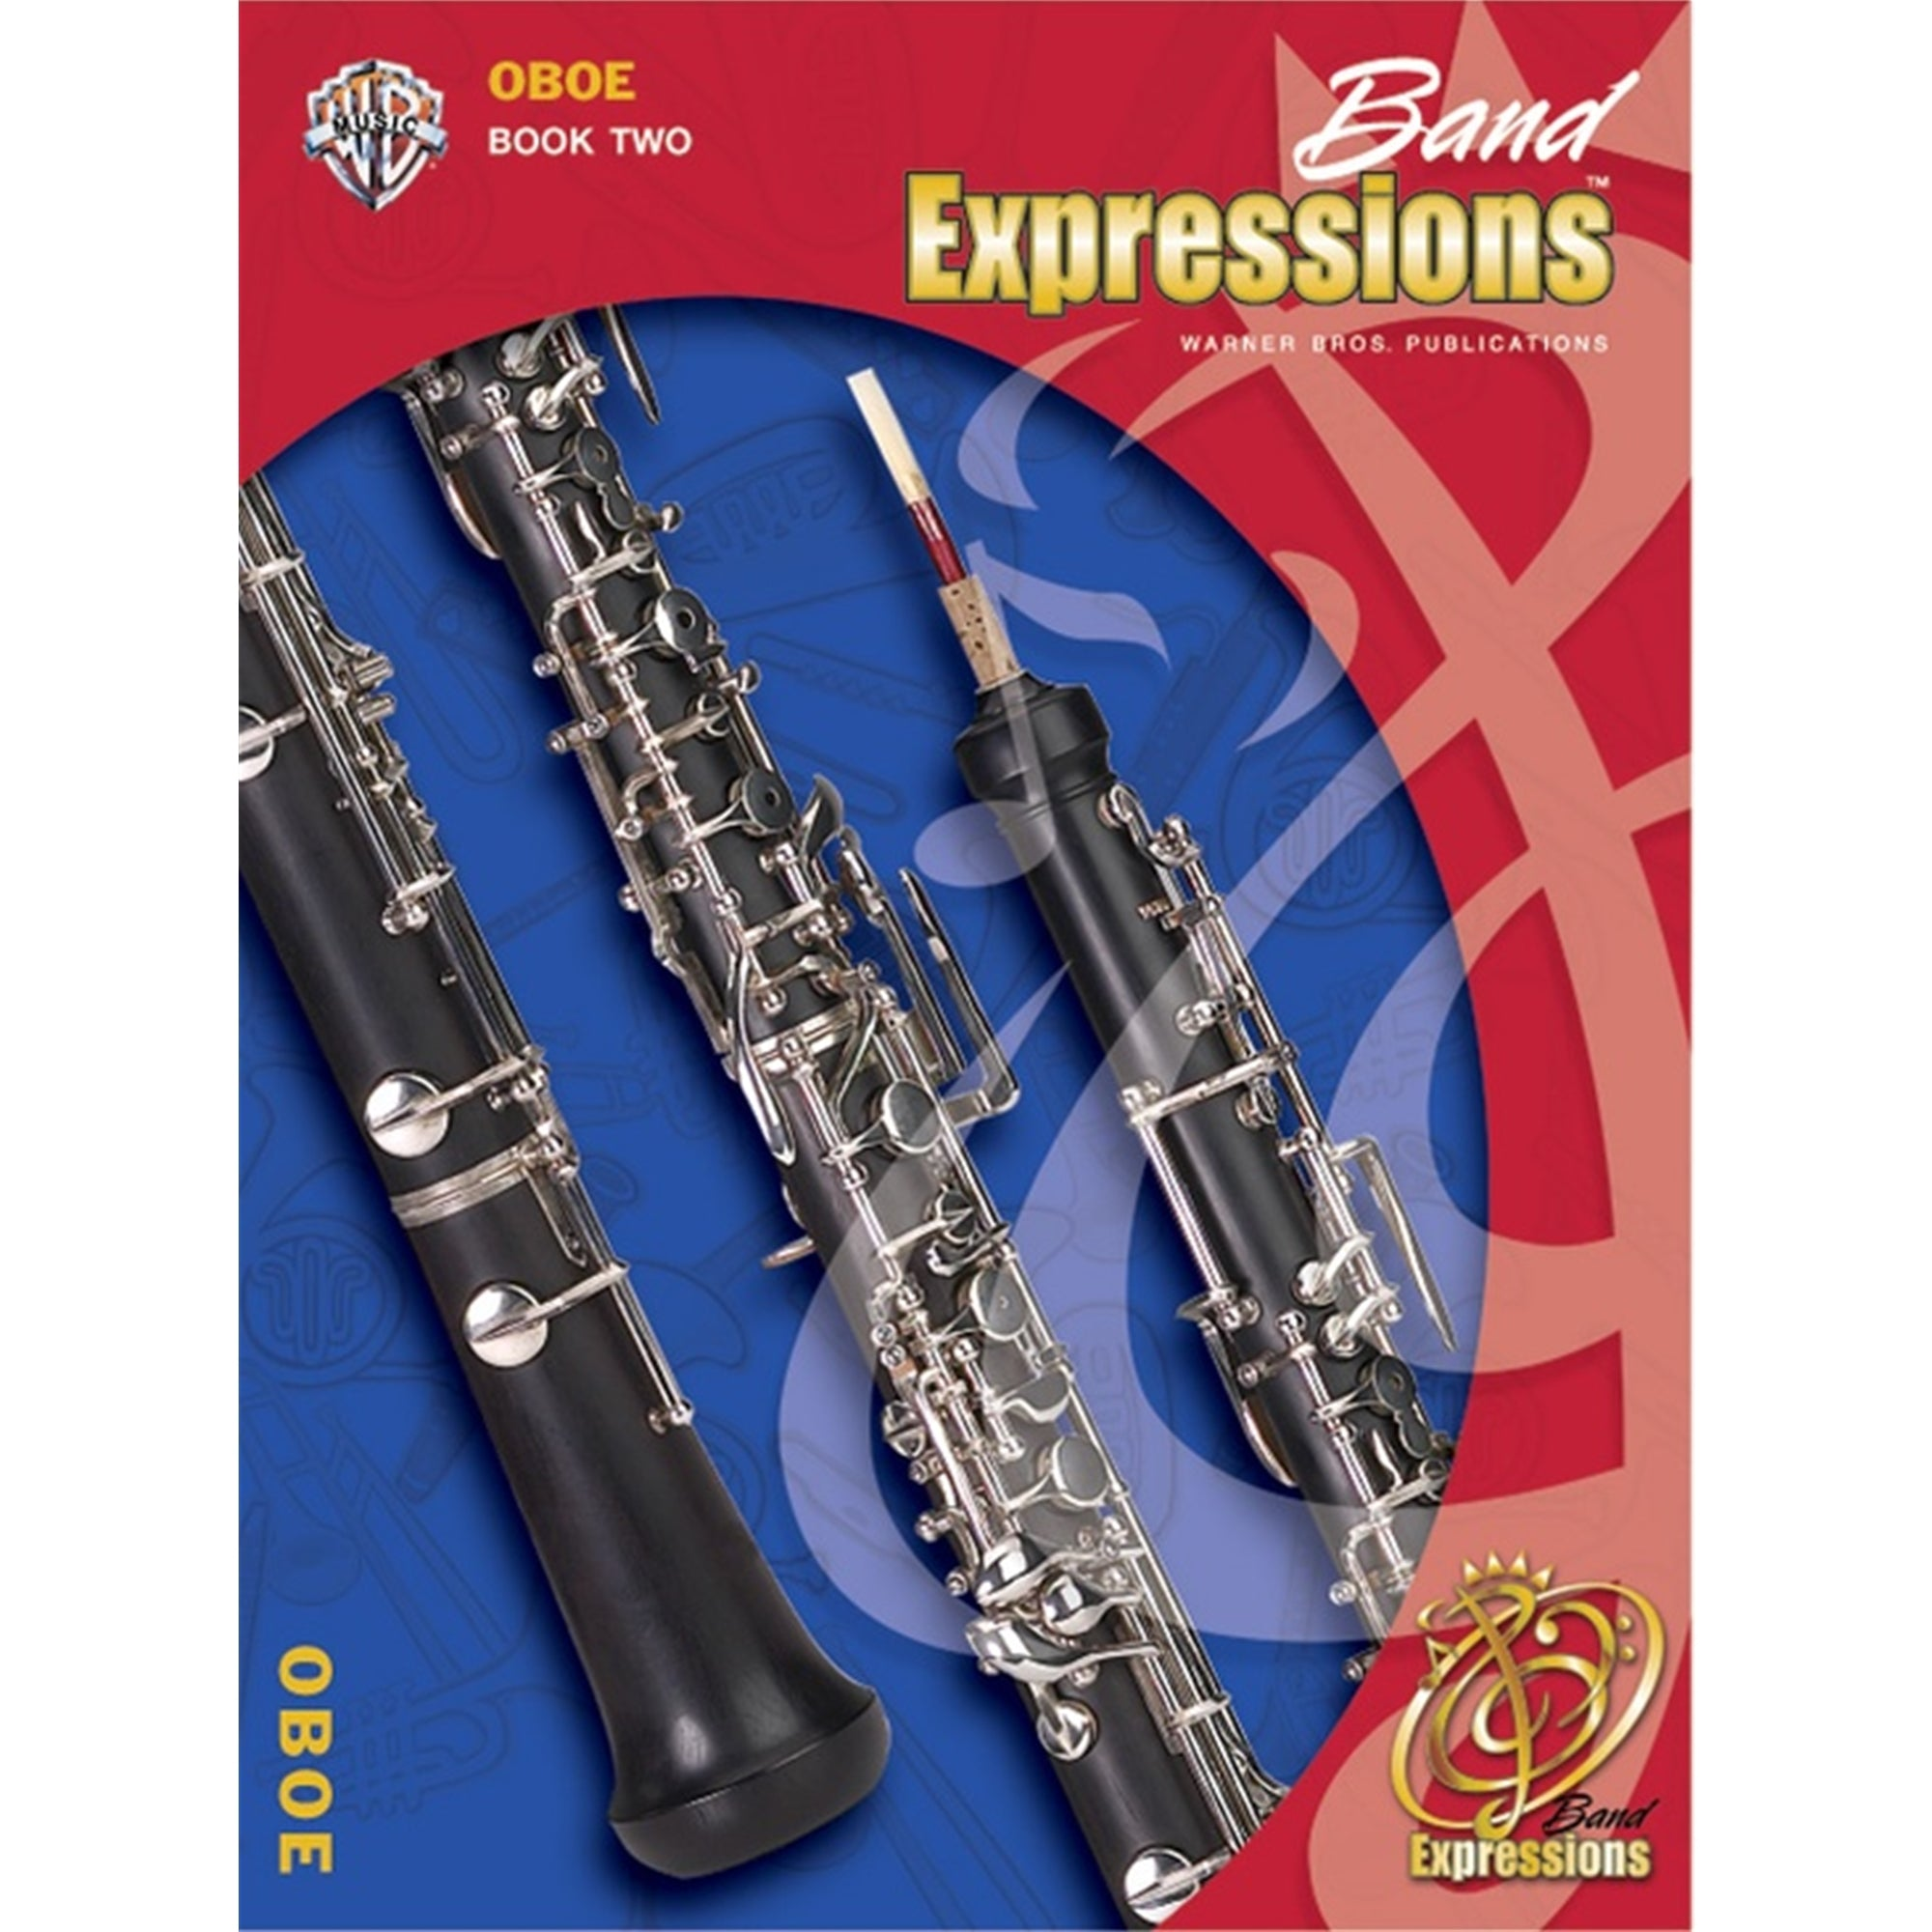 ALFRED 00-EMCB2003CD Band Expressions , Book Two: Student Edition [Oboe]